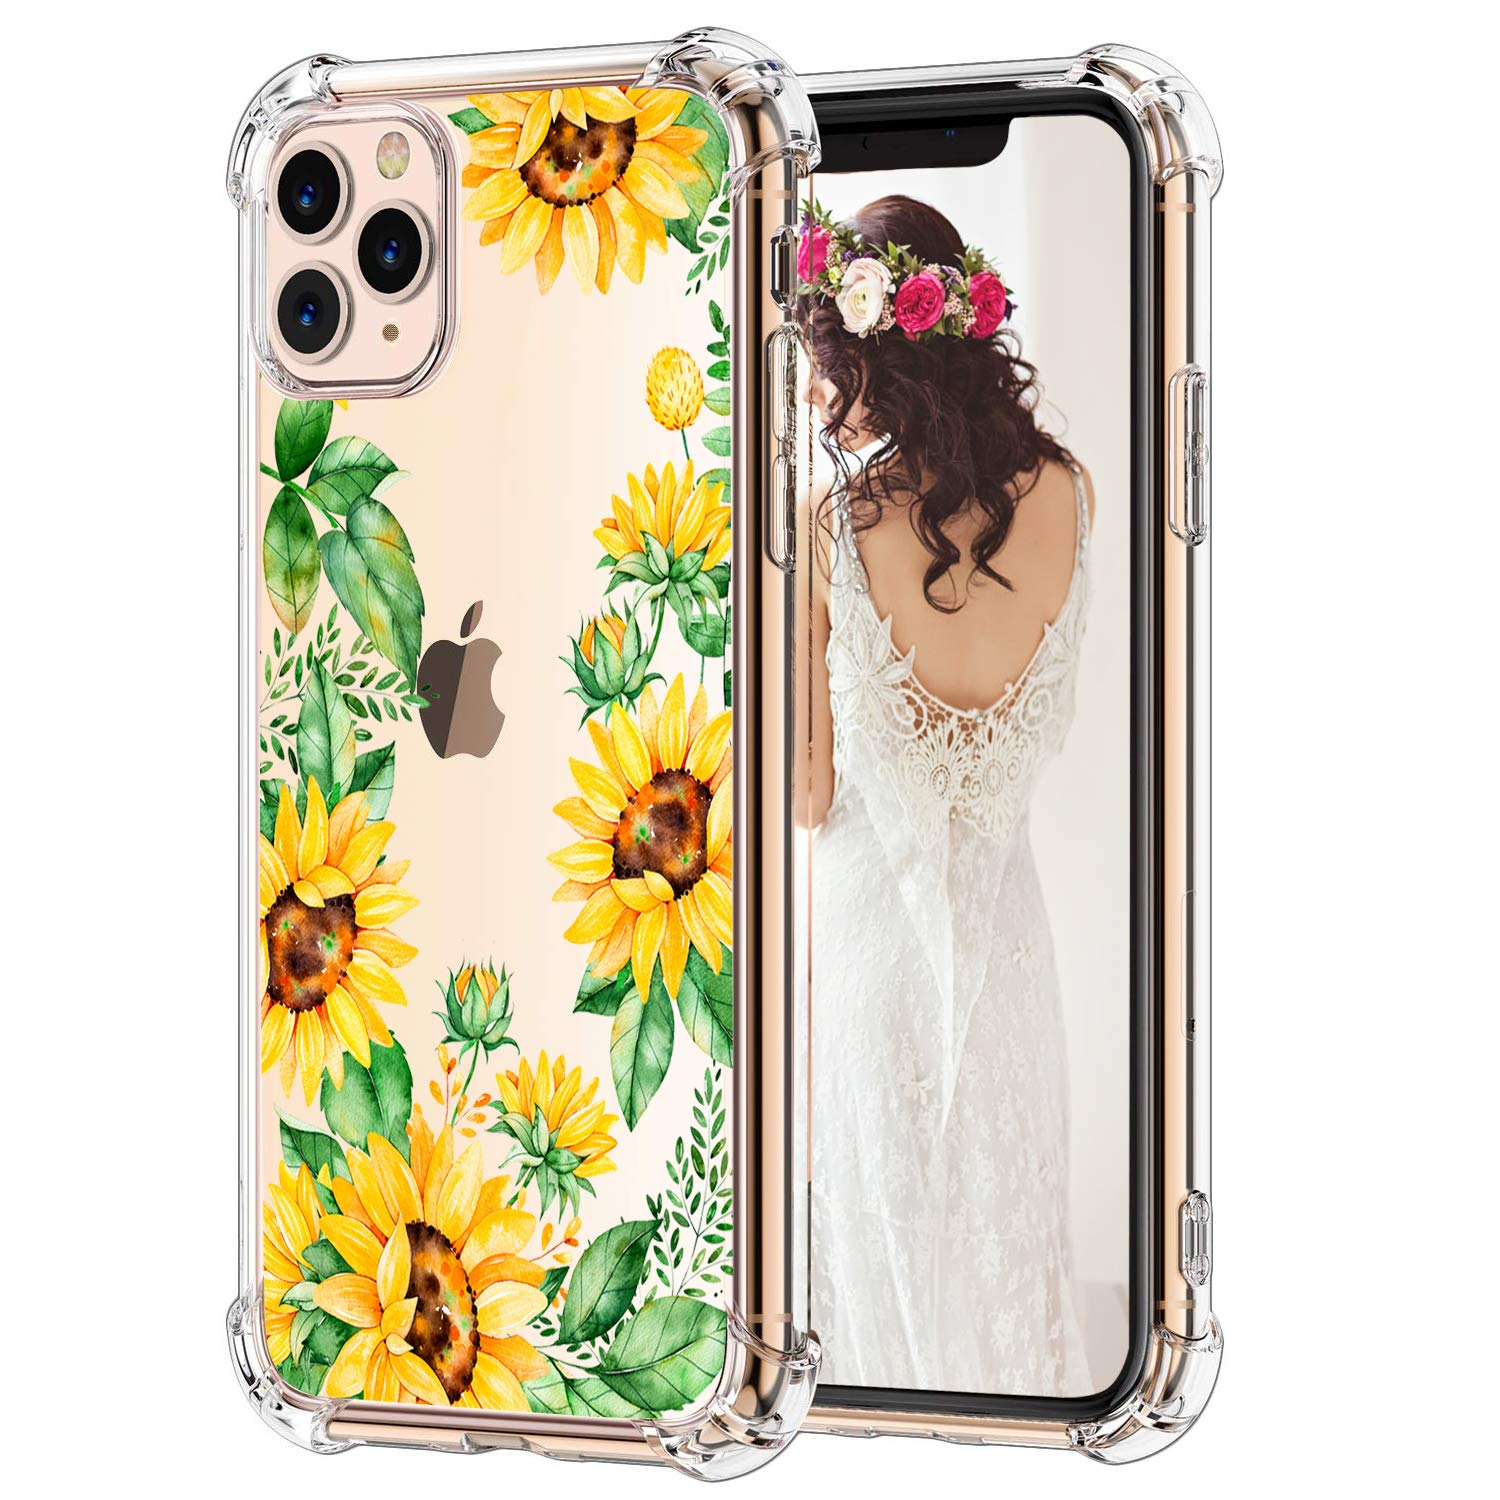 Hepix iPhone 11 Pro Max Case Sunflowers 11 Pro Max Cases, Flowers Green Leaves Slim Clear Flexible Soft TPU Frame with Protective Corners, Anti-Scratch Shock Absorption for iPhone 11 Pro Max (2019)